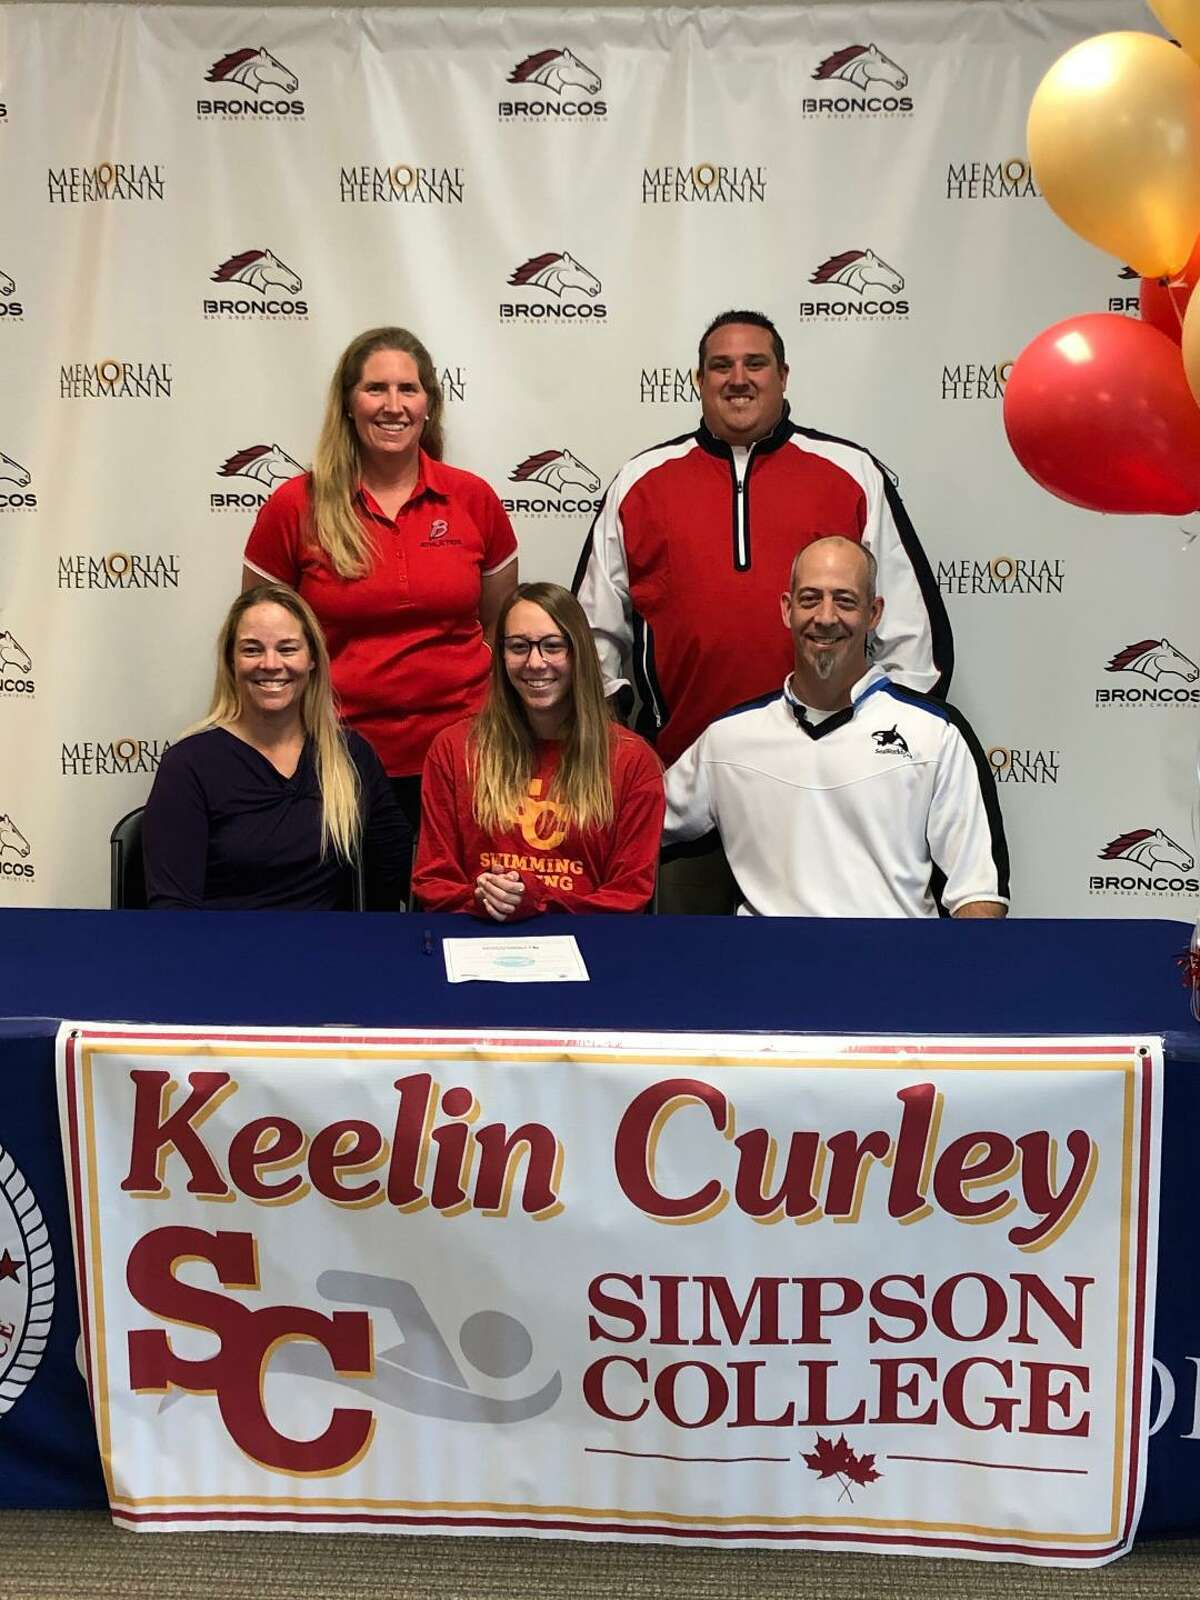 Keelin Curley of Bay Area Christian High School has signed a national swimming letter of intent with Simpson College. Shown are (bottom row) Keelin Curley flanked by her parents, Su and Eric, and (top row) BAC swim coach Katherine Farland and BAC athletic director Kyle Kennedy.